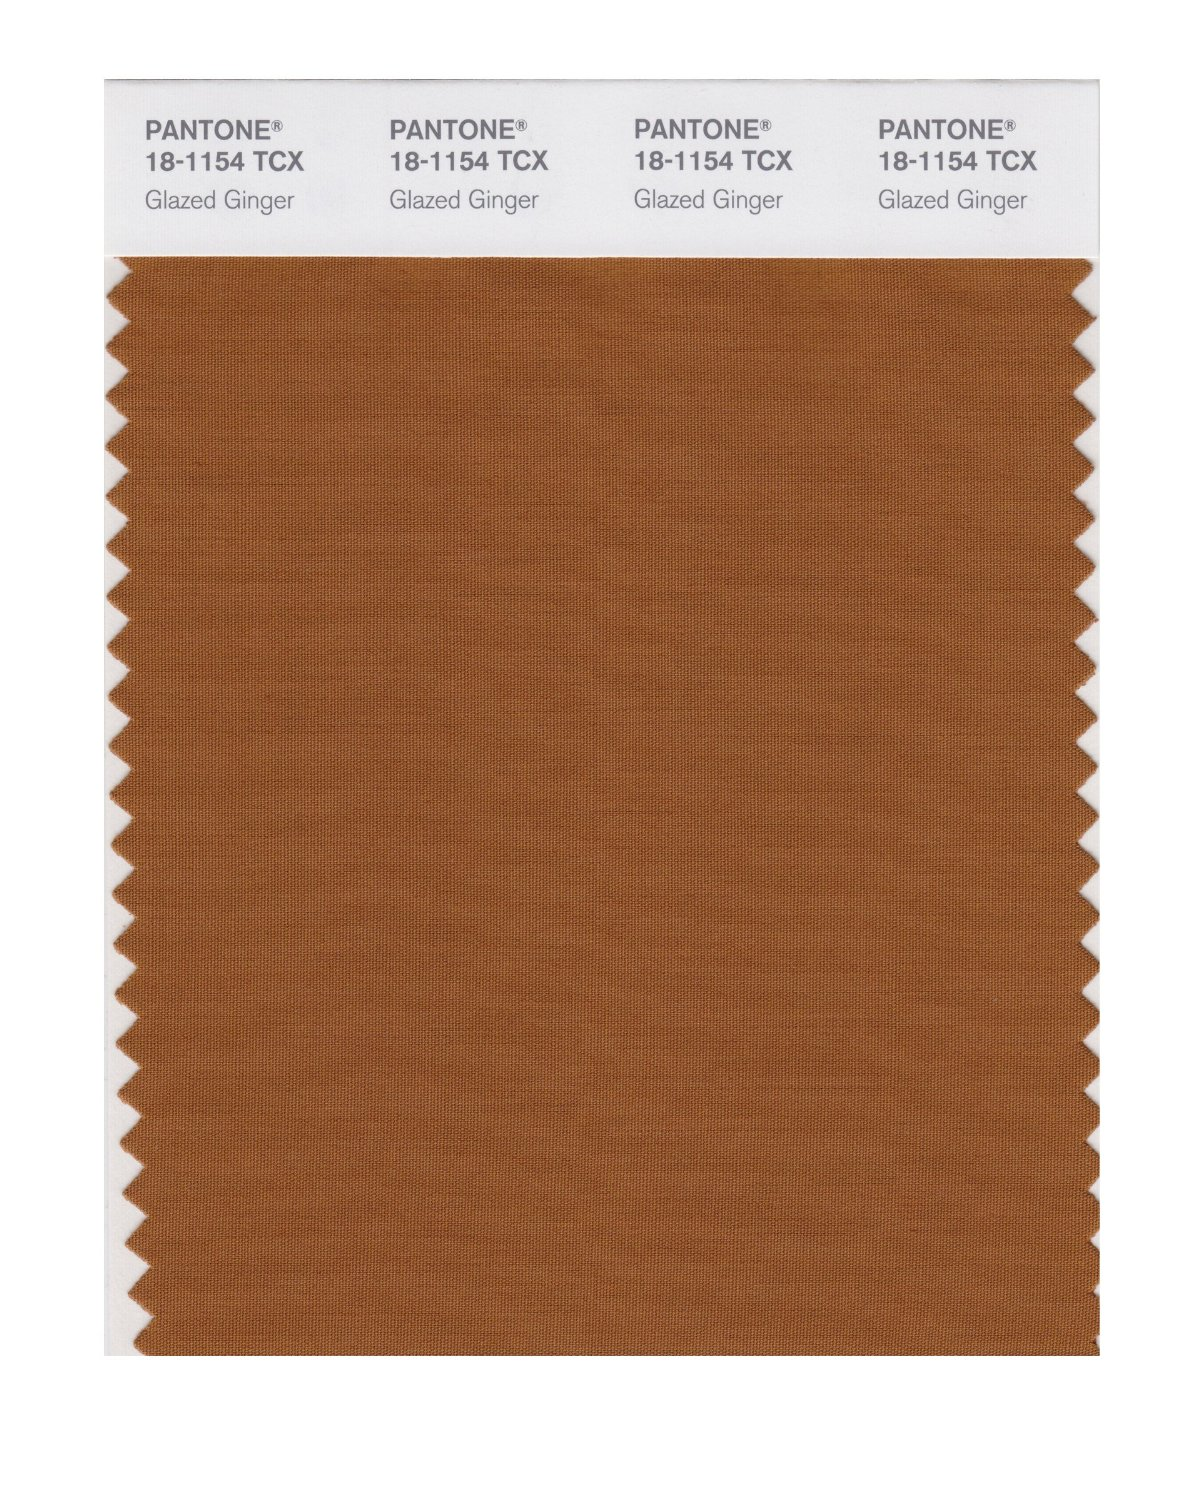 Pantone Smart Swatch 18-1154 Glazed Ginger